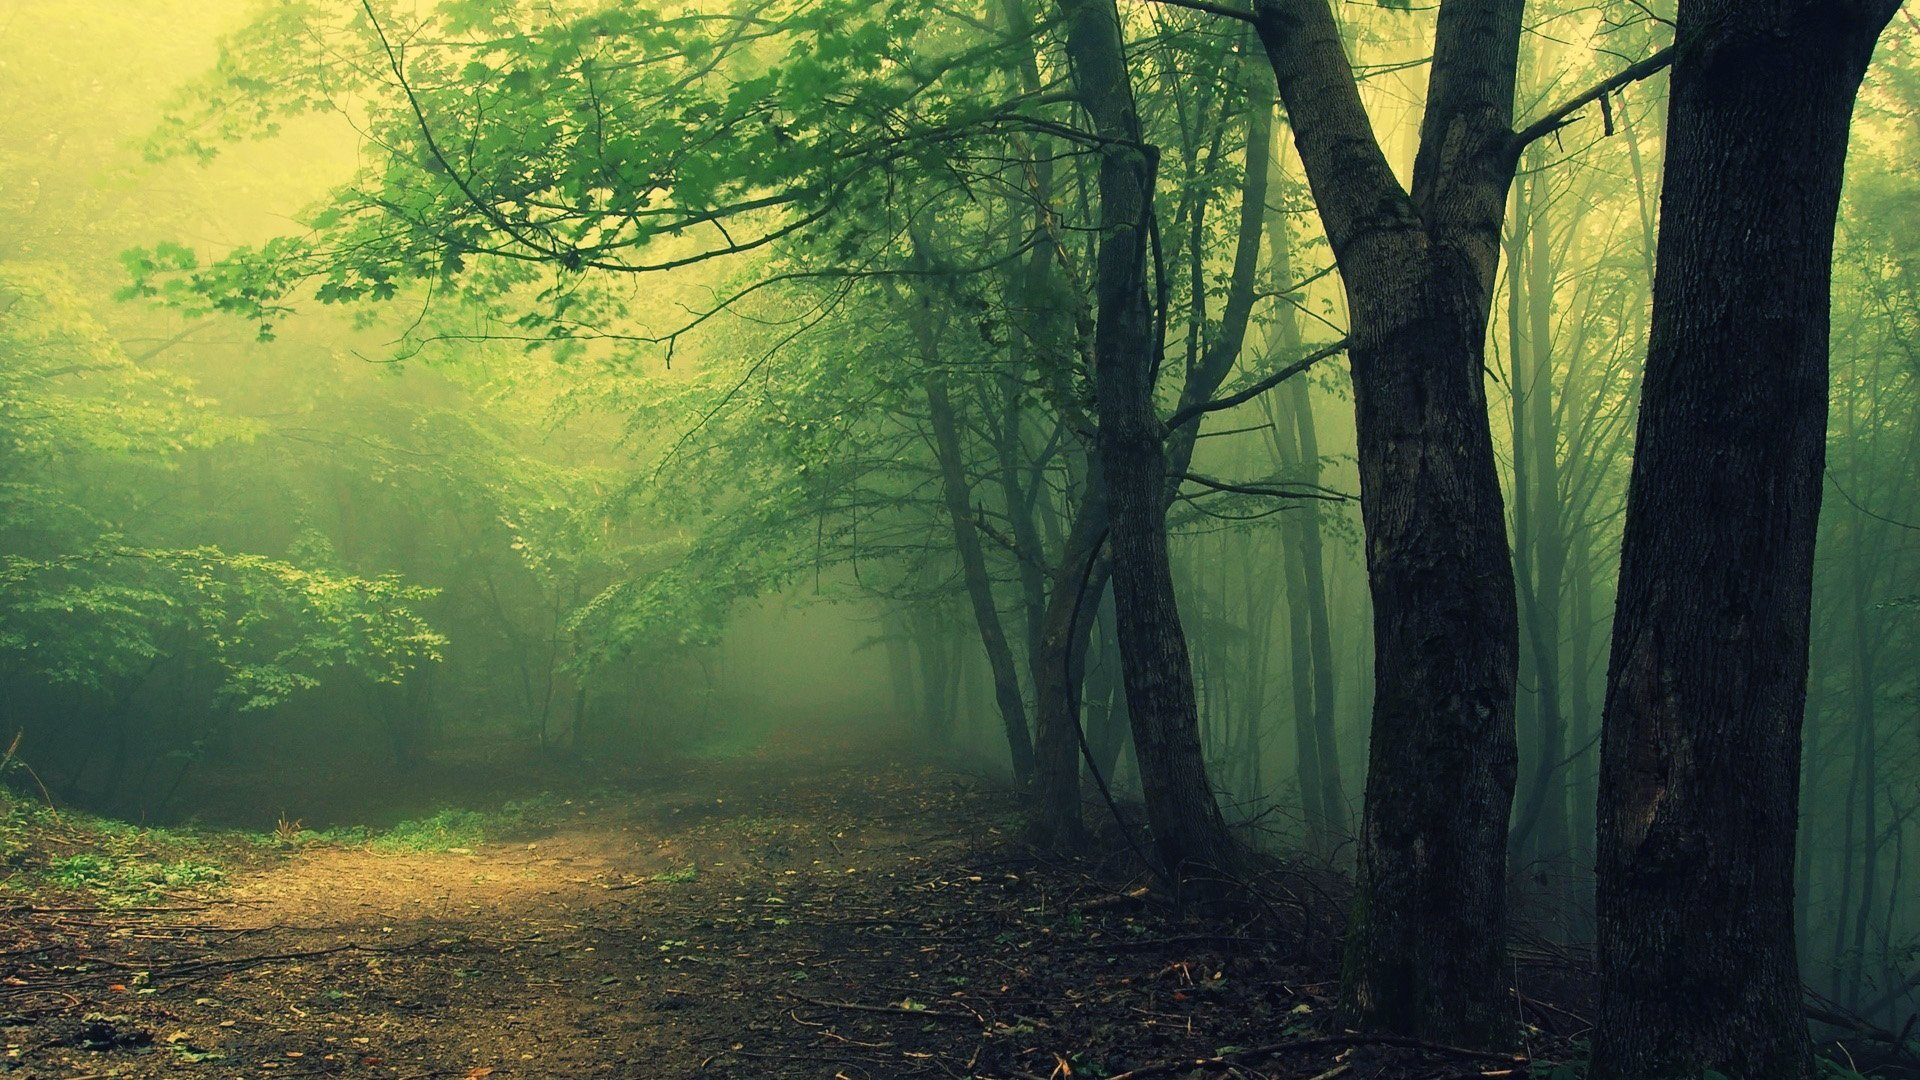 Hoia Baciu Woods Wallpapers Haunted Romanian Forest 4334871206 1920x1080